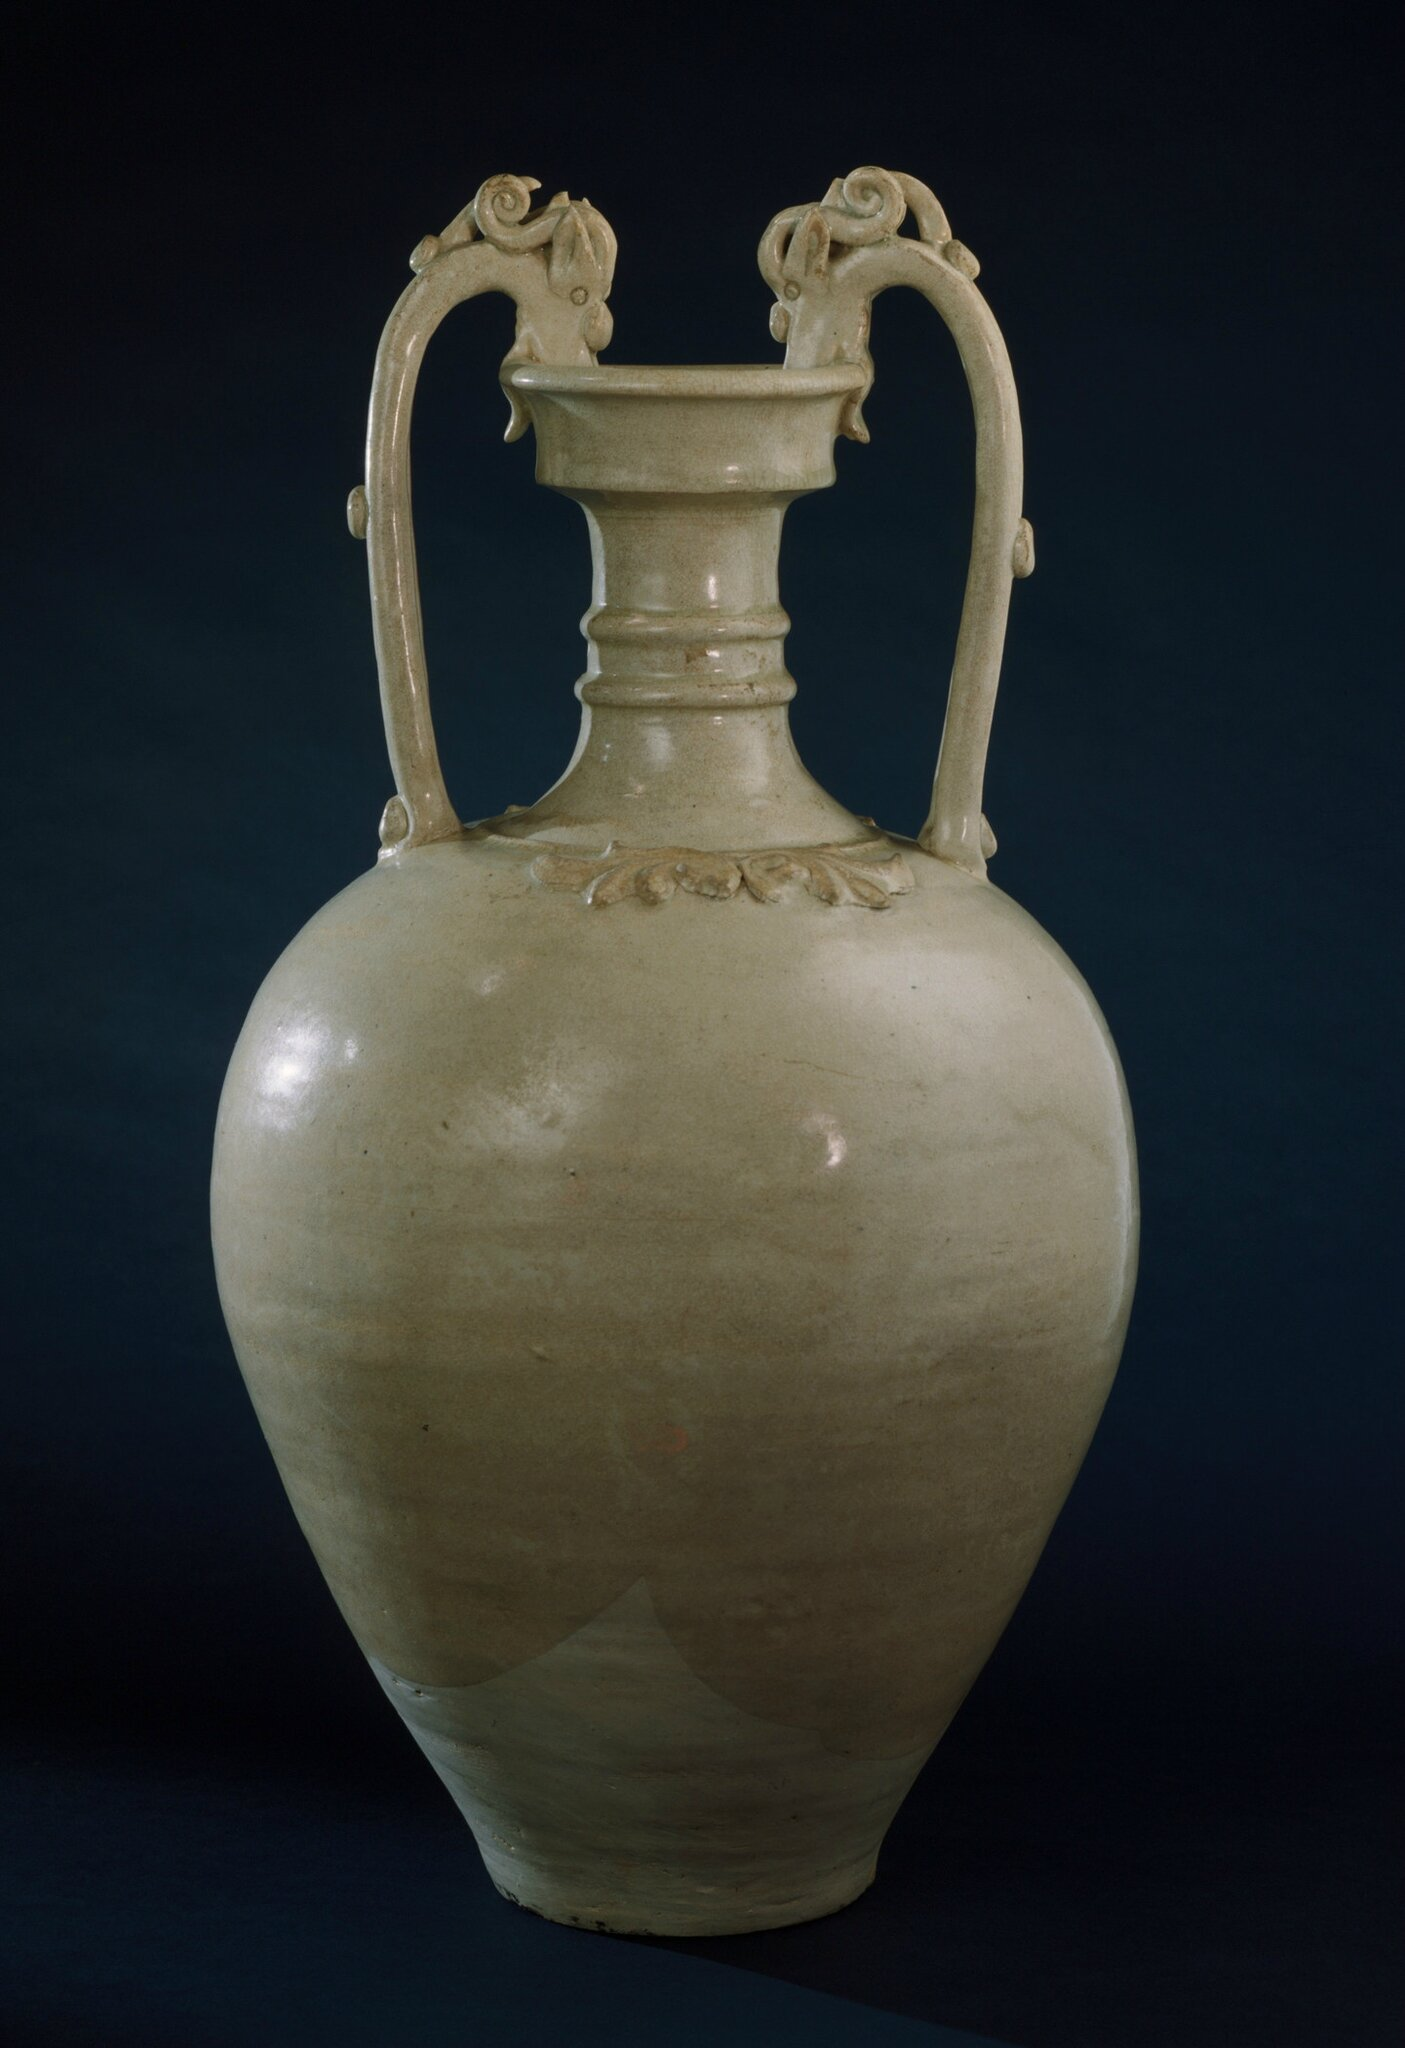 Amphora (Ping) with Dragon Handles, China, early Tang dynasty, about 618-700